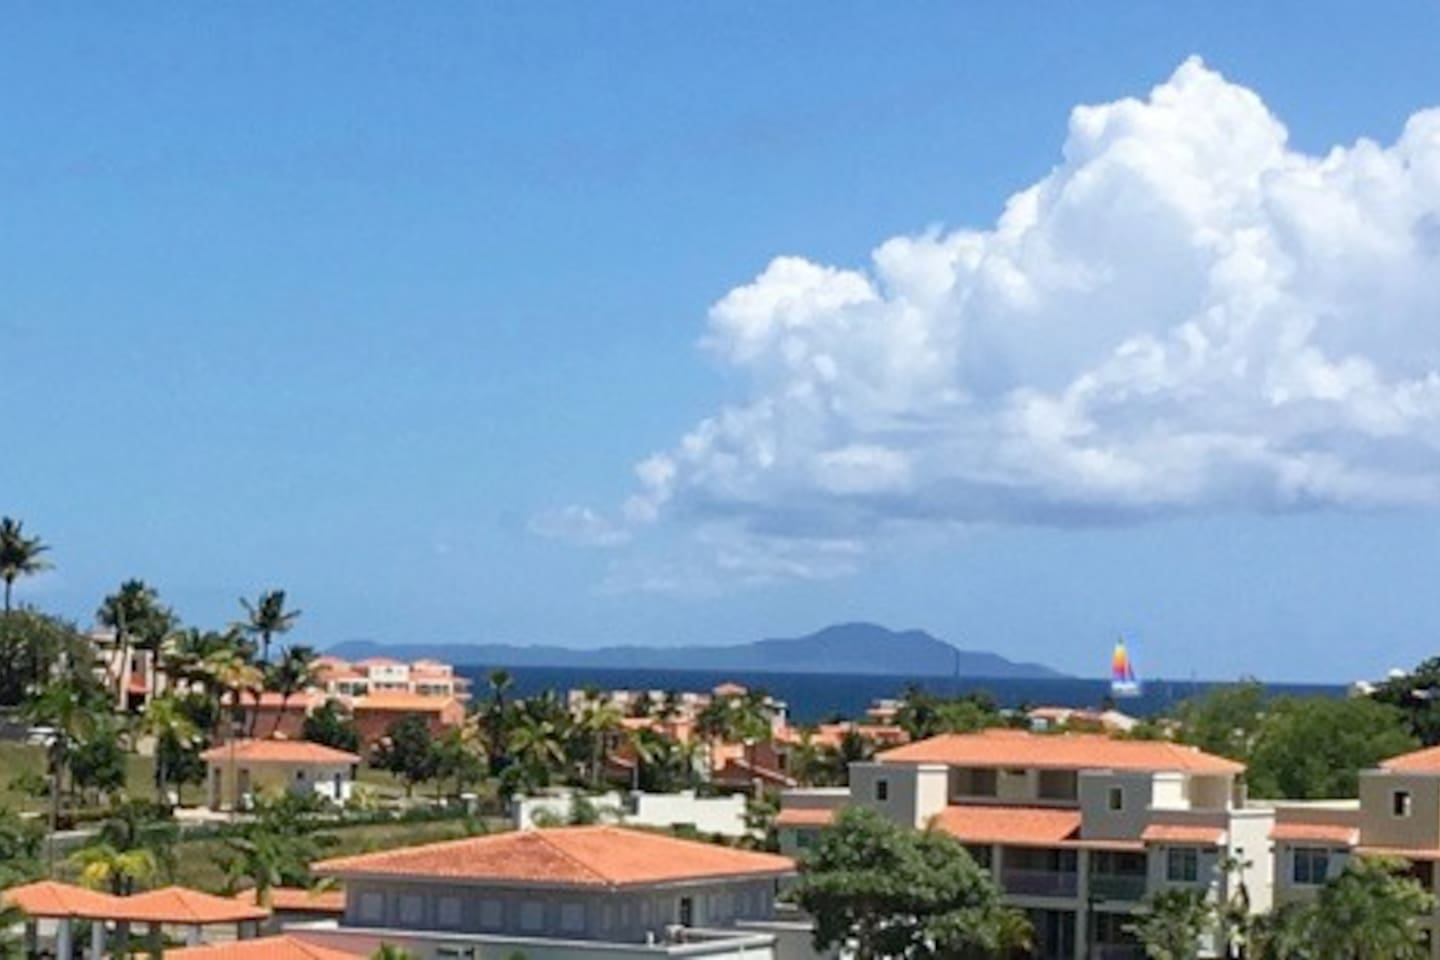 Beautiful Caribbean View from the balcony...!